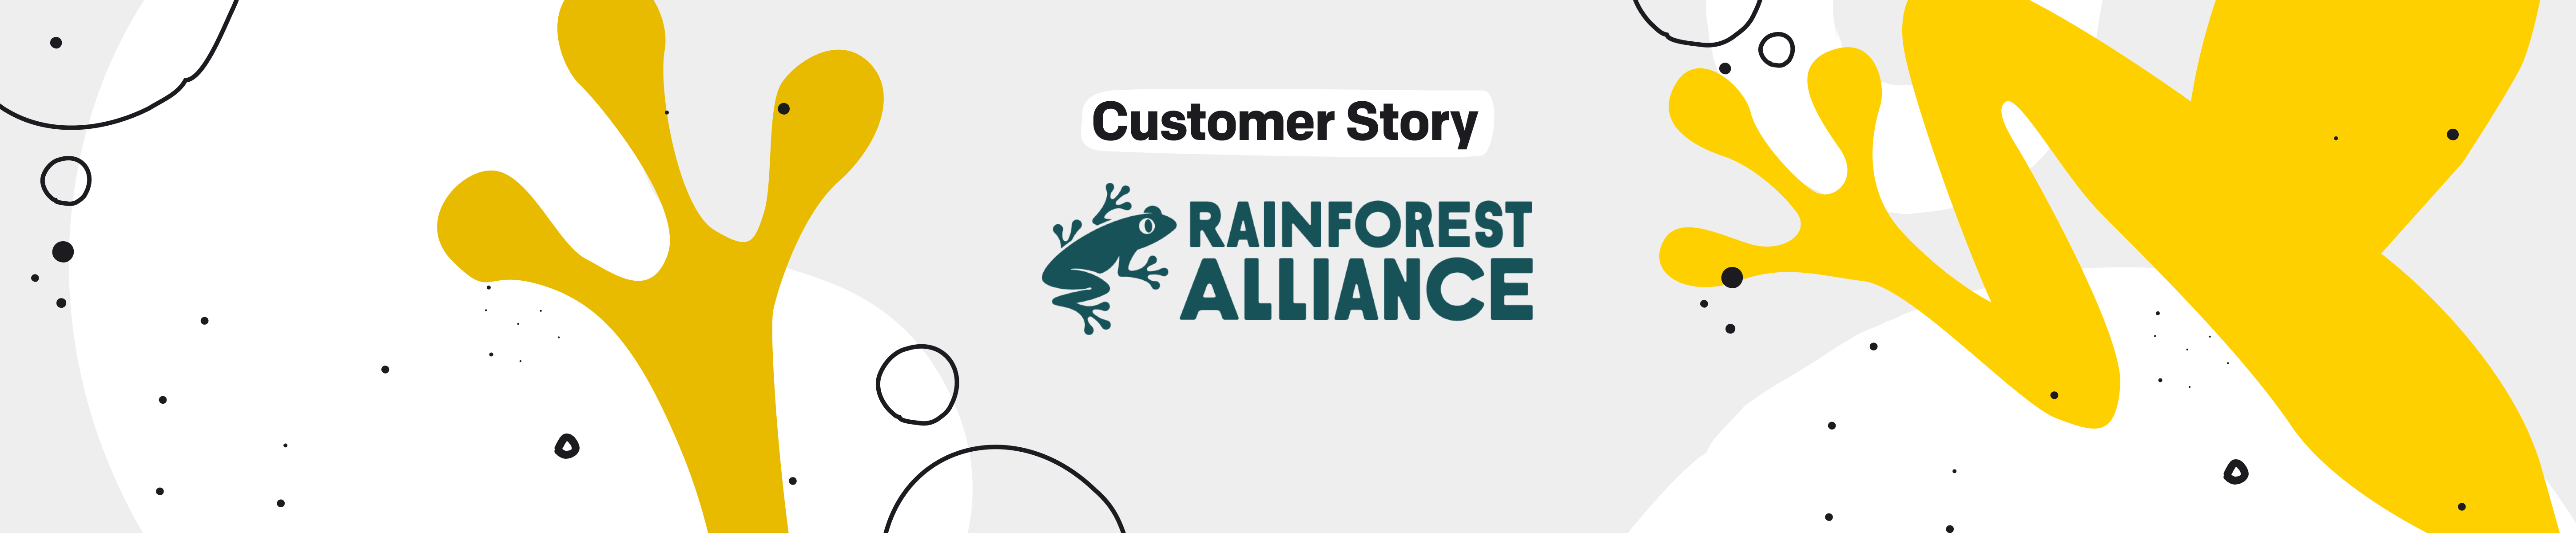 Header for The Rainforest Alliance Supports Over 1200 Users Monthly by Using a Chatbot